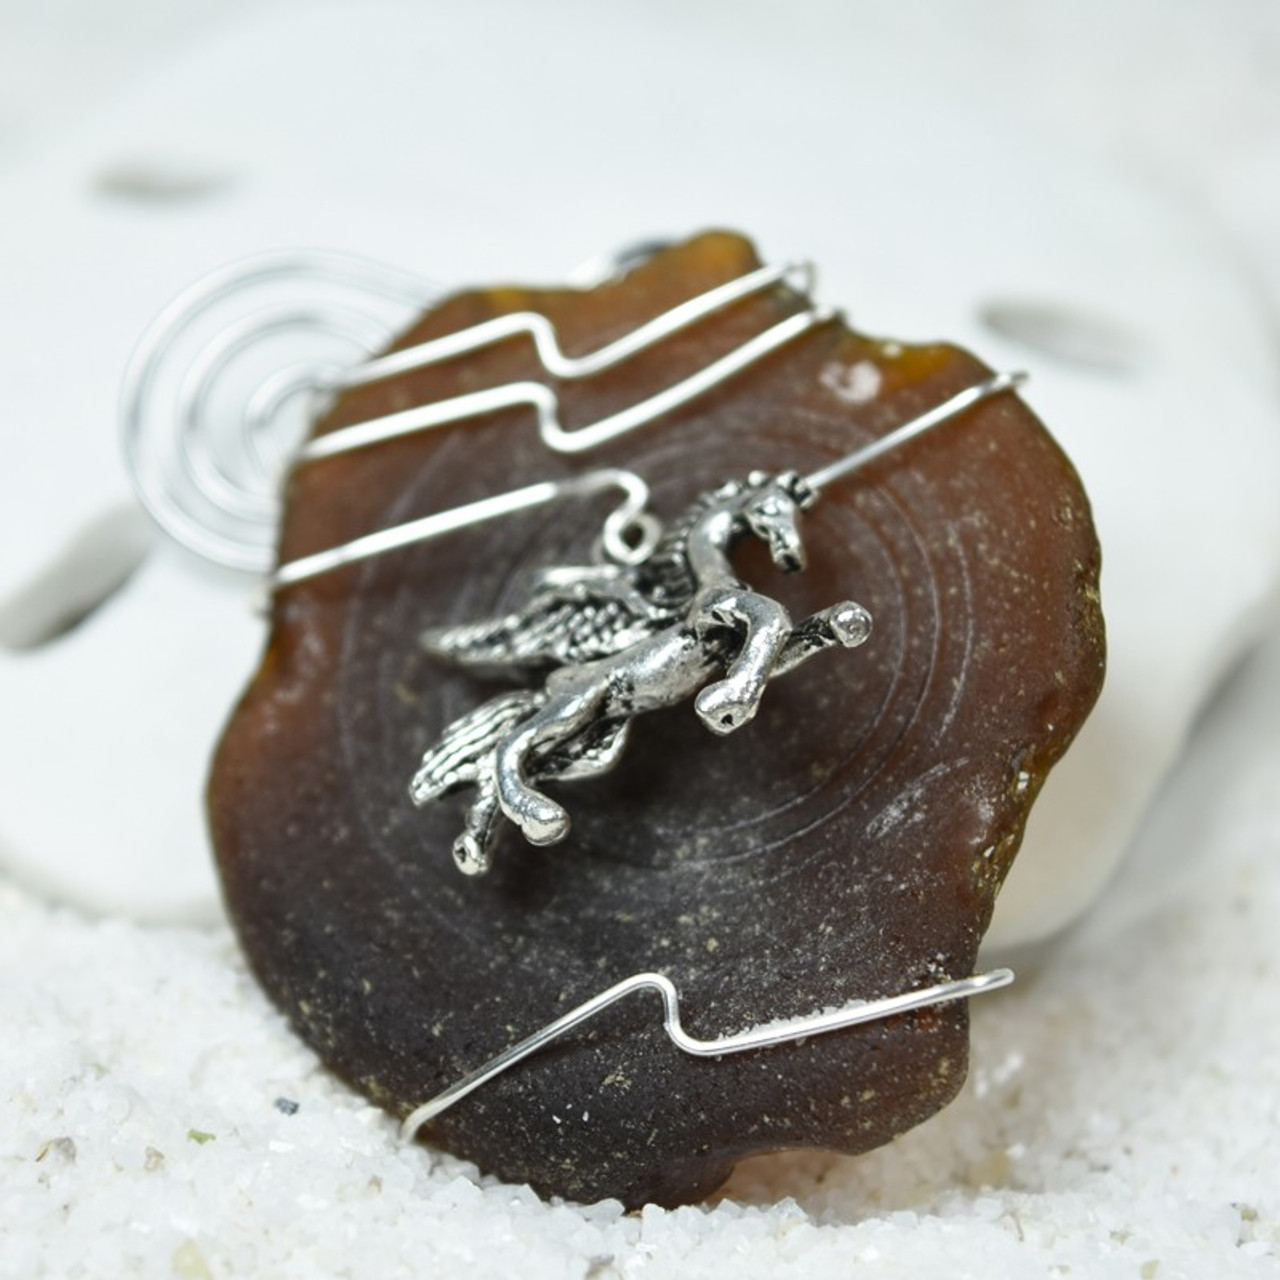 Pegasus Charm on a Custom Surf Tumbled Sea Glass Ornament - Choose Your Color Sea Glass Frosted, Olive Green, and Brown.